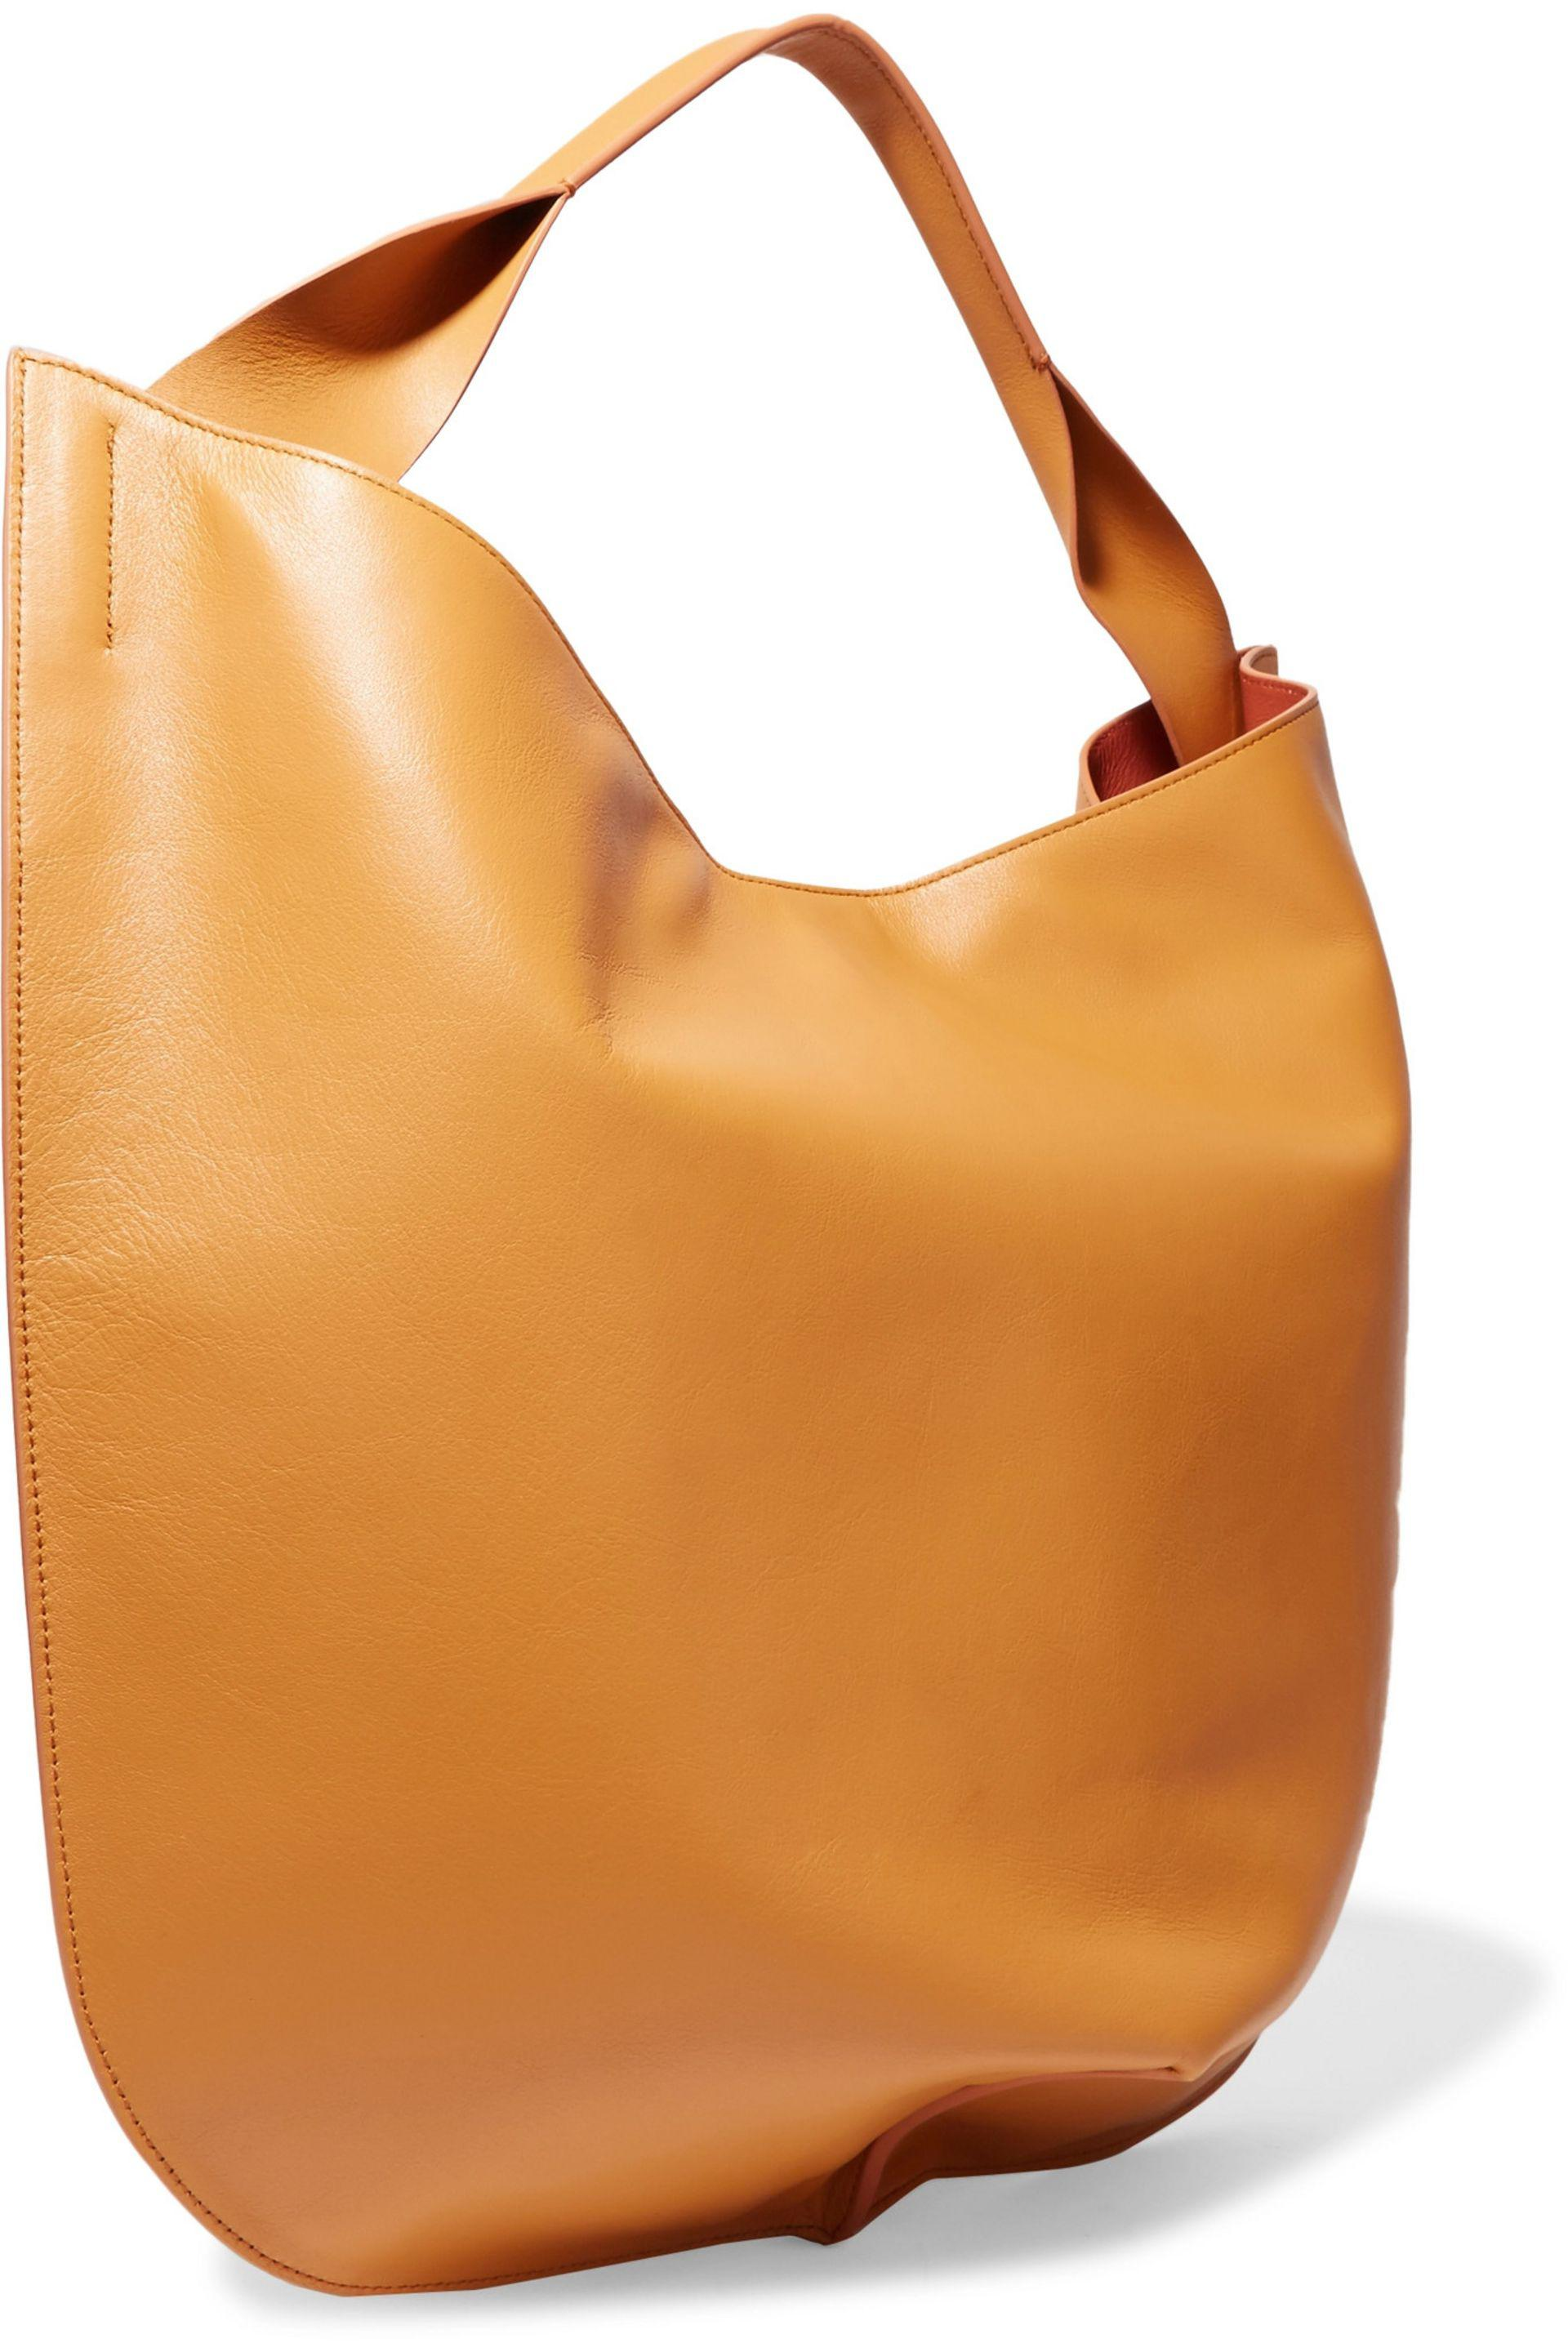 tote bag - Yellow & Orange Jil Sander Super Specials Limited New Outlet Discount Authentic Cheap Fast Delivery Hurry Up eZP7ZN